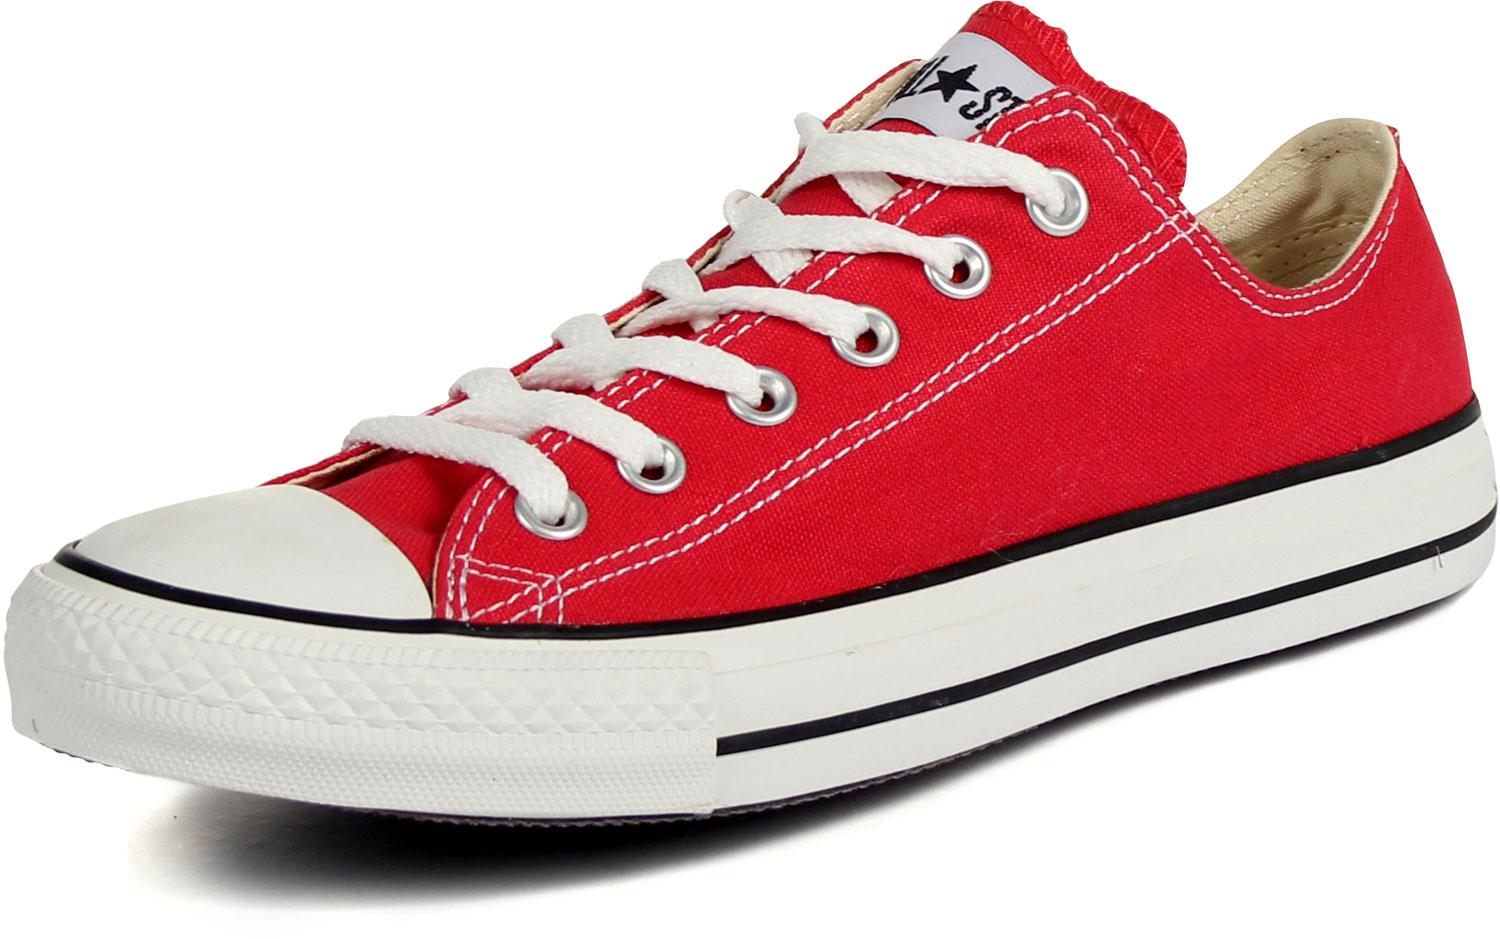 9c8027d169b Converse Chuck Taylor All Star Shoes (M9696) Low Top in Red